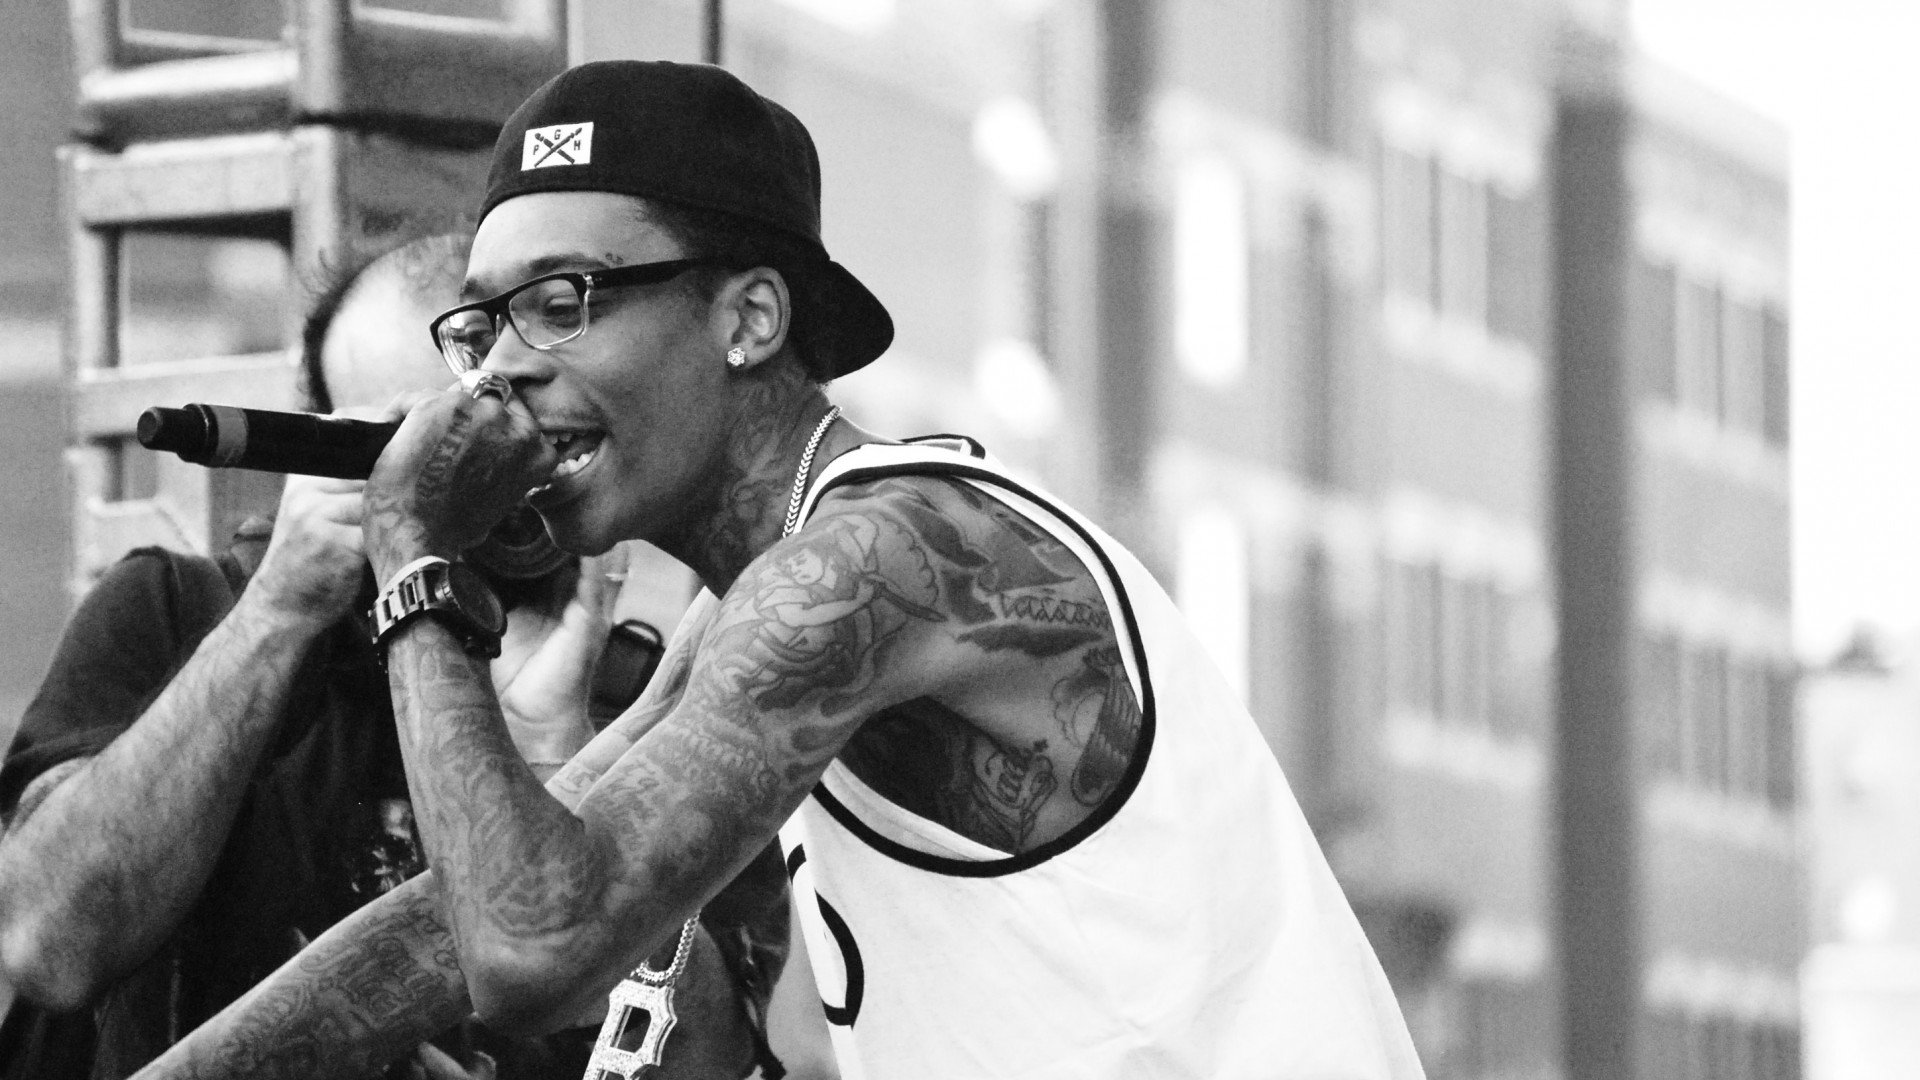 Monochrome Wiz Khalifa Performing Wallpaper 59062 ...